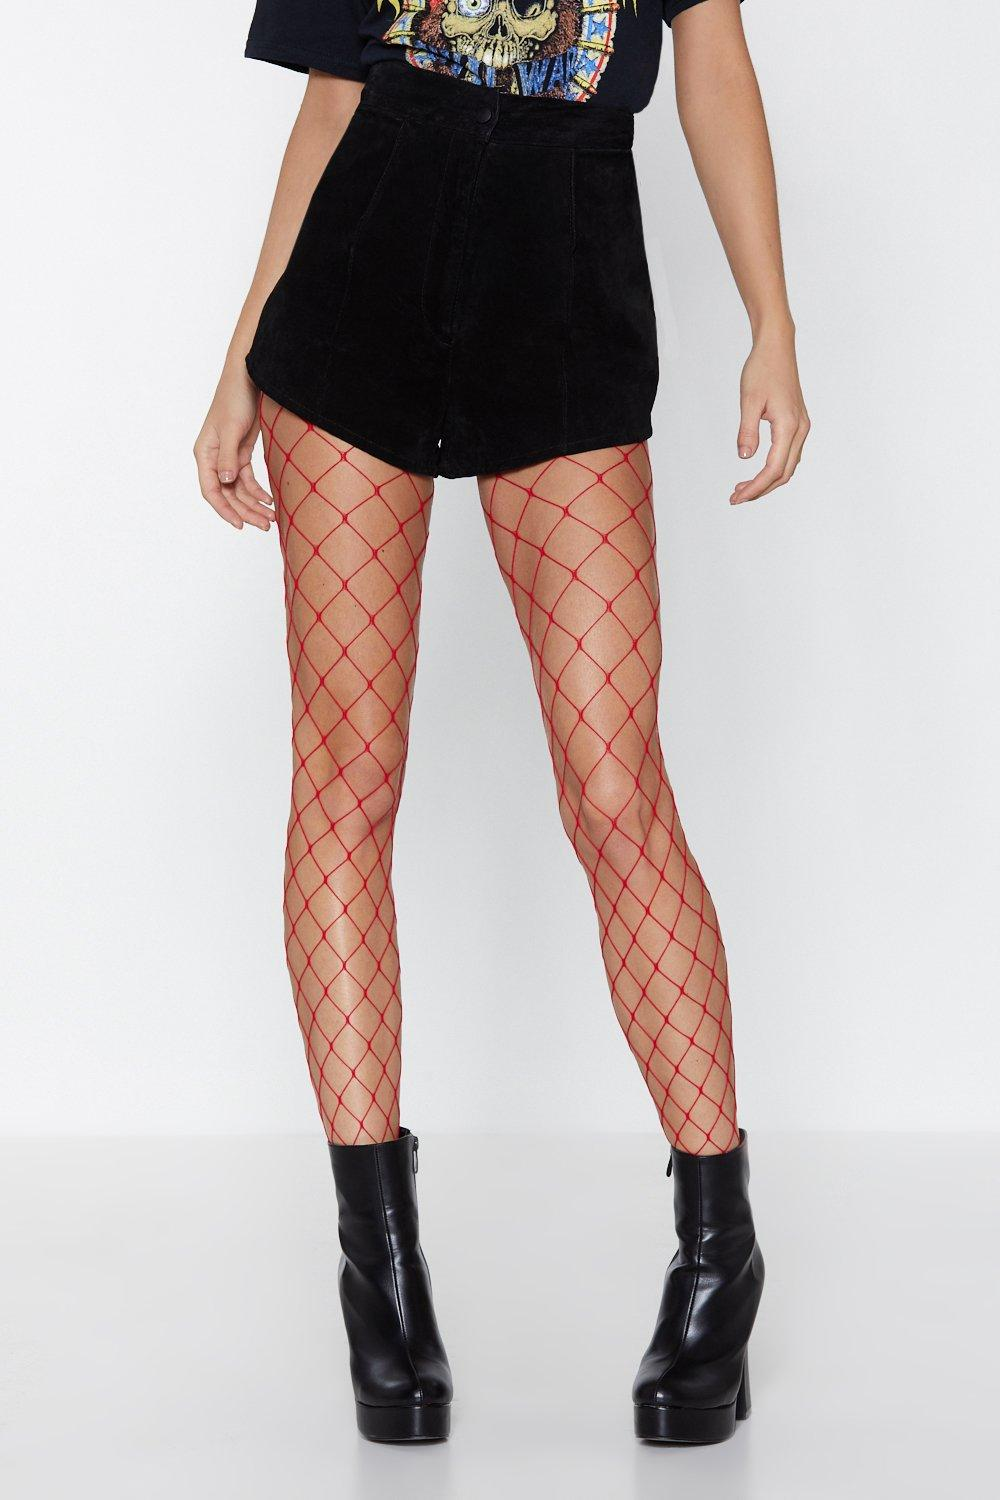 c5591e182 Womens Red Net For You Fishnet Tights